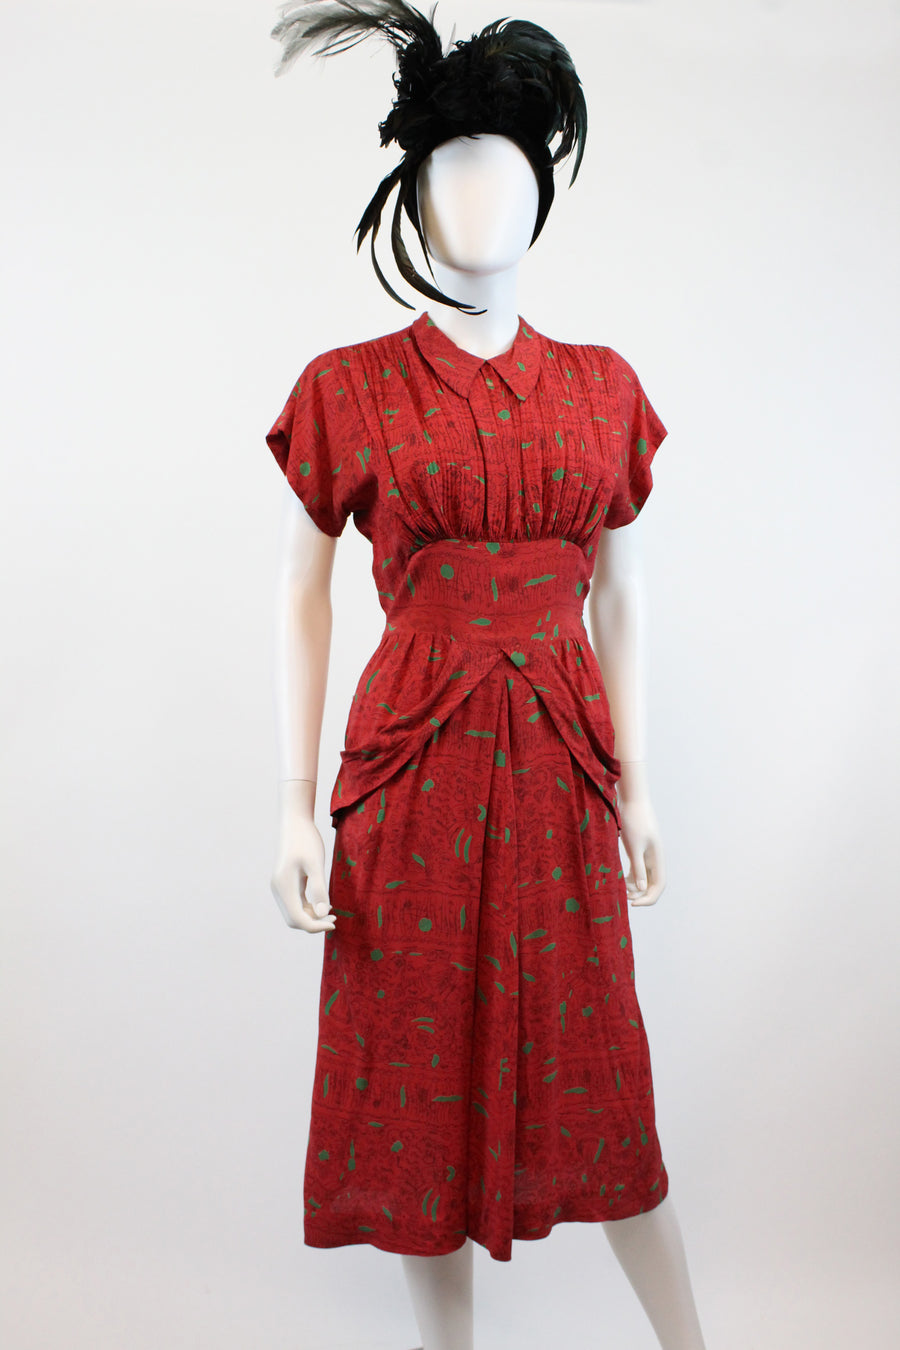 1940s rayon novelty print dress small | vintage dutch people | new in